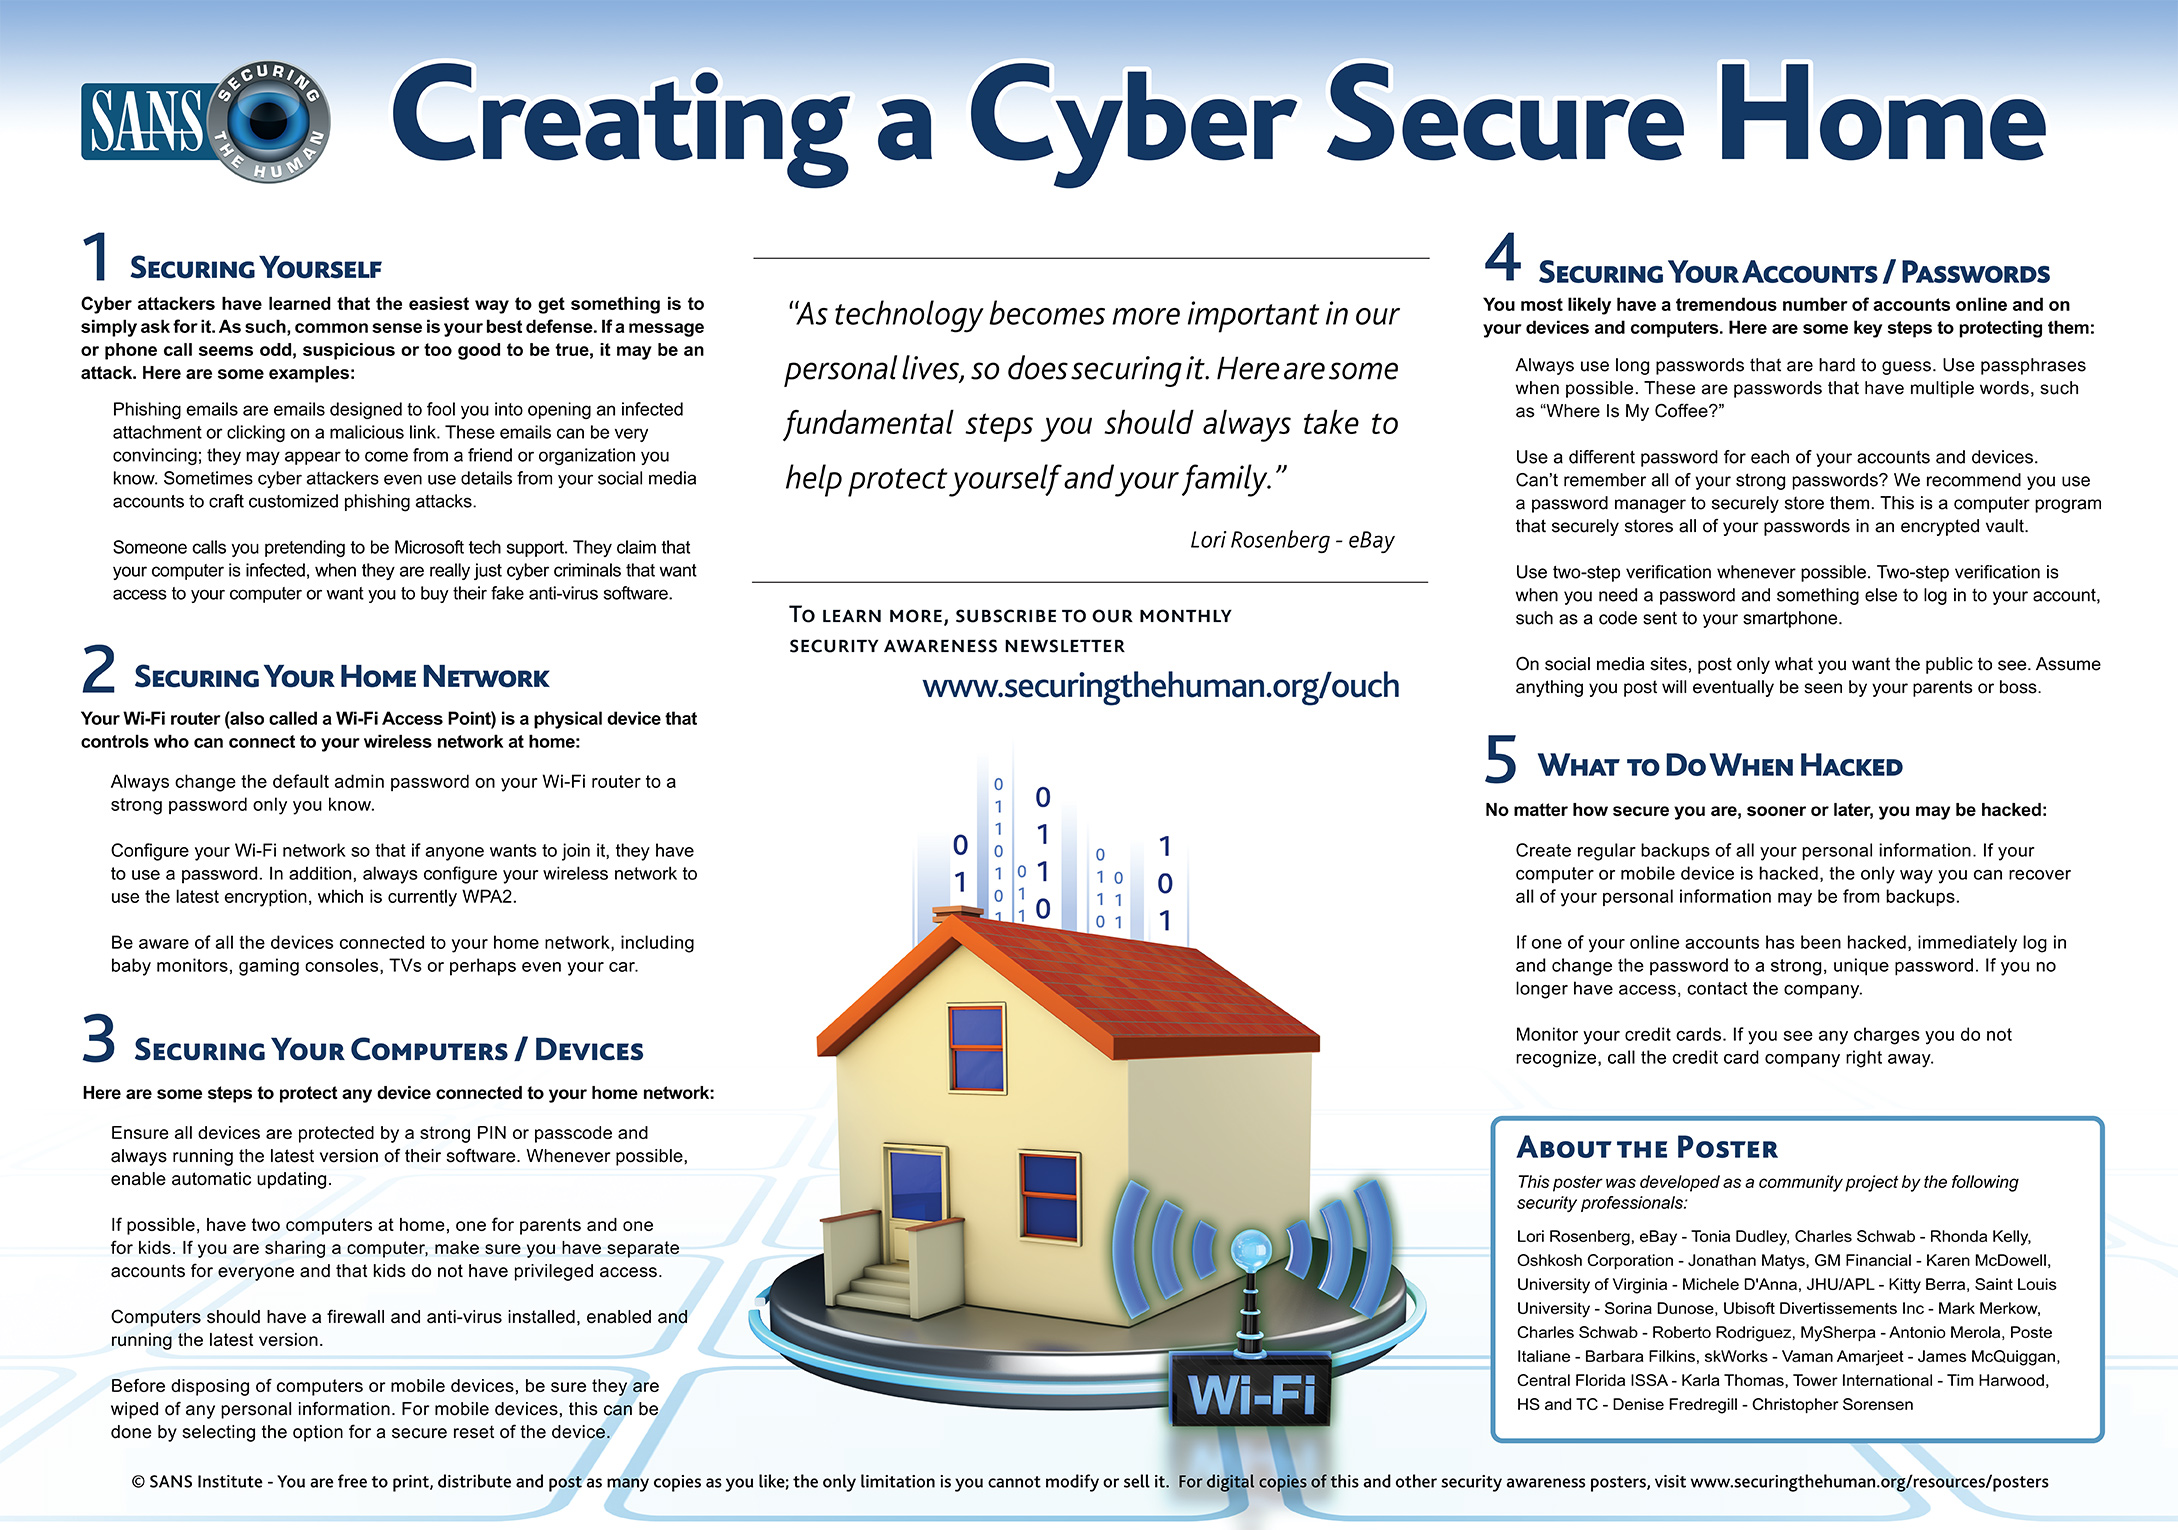 Creating a Cyber Secure Home Image